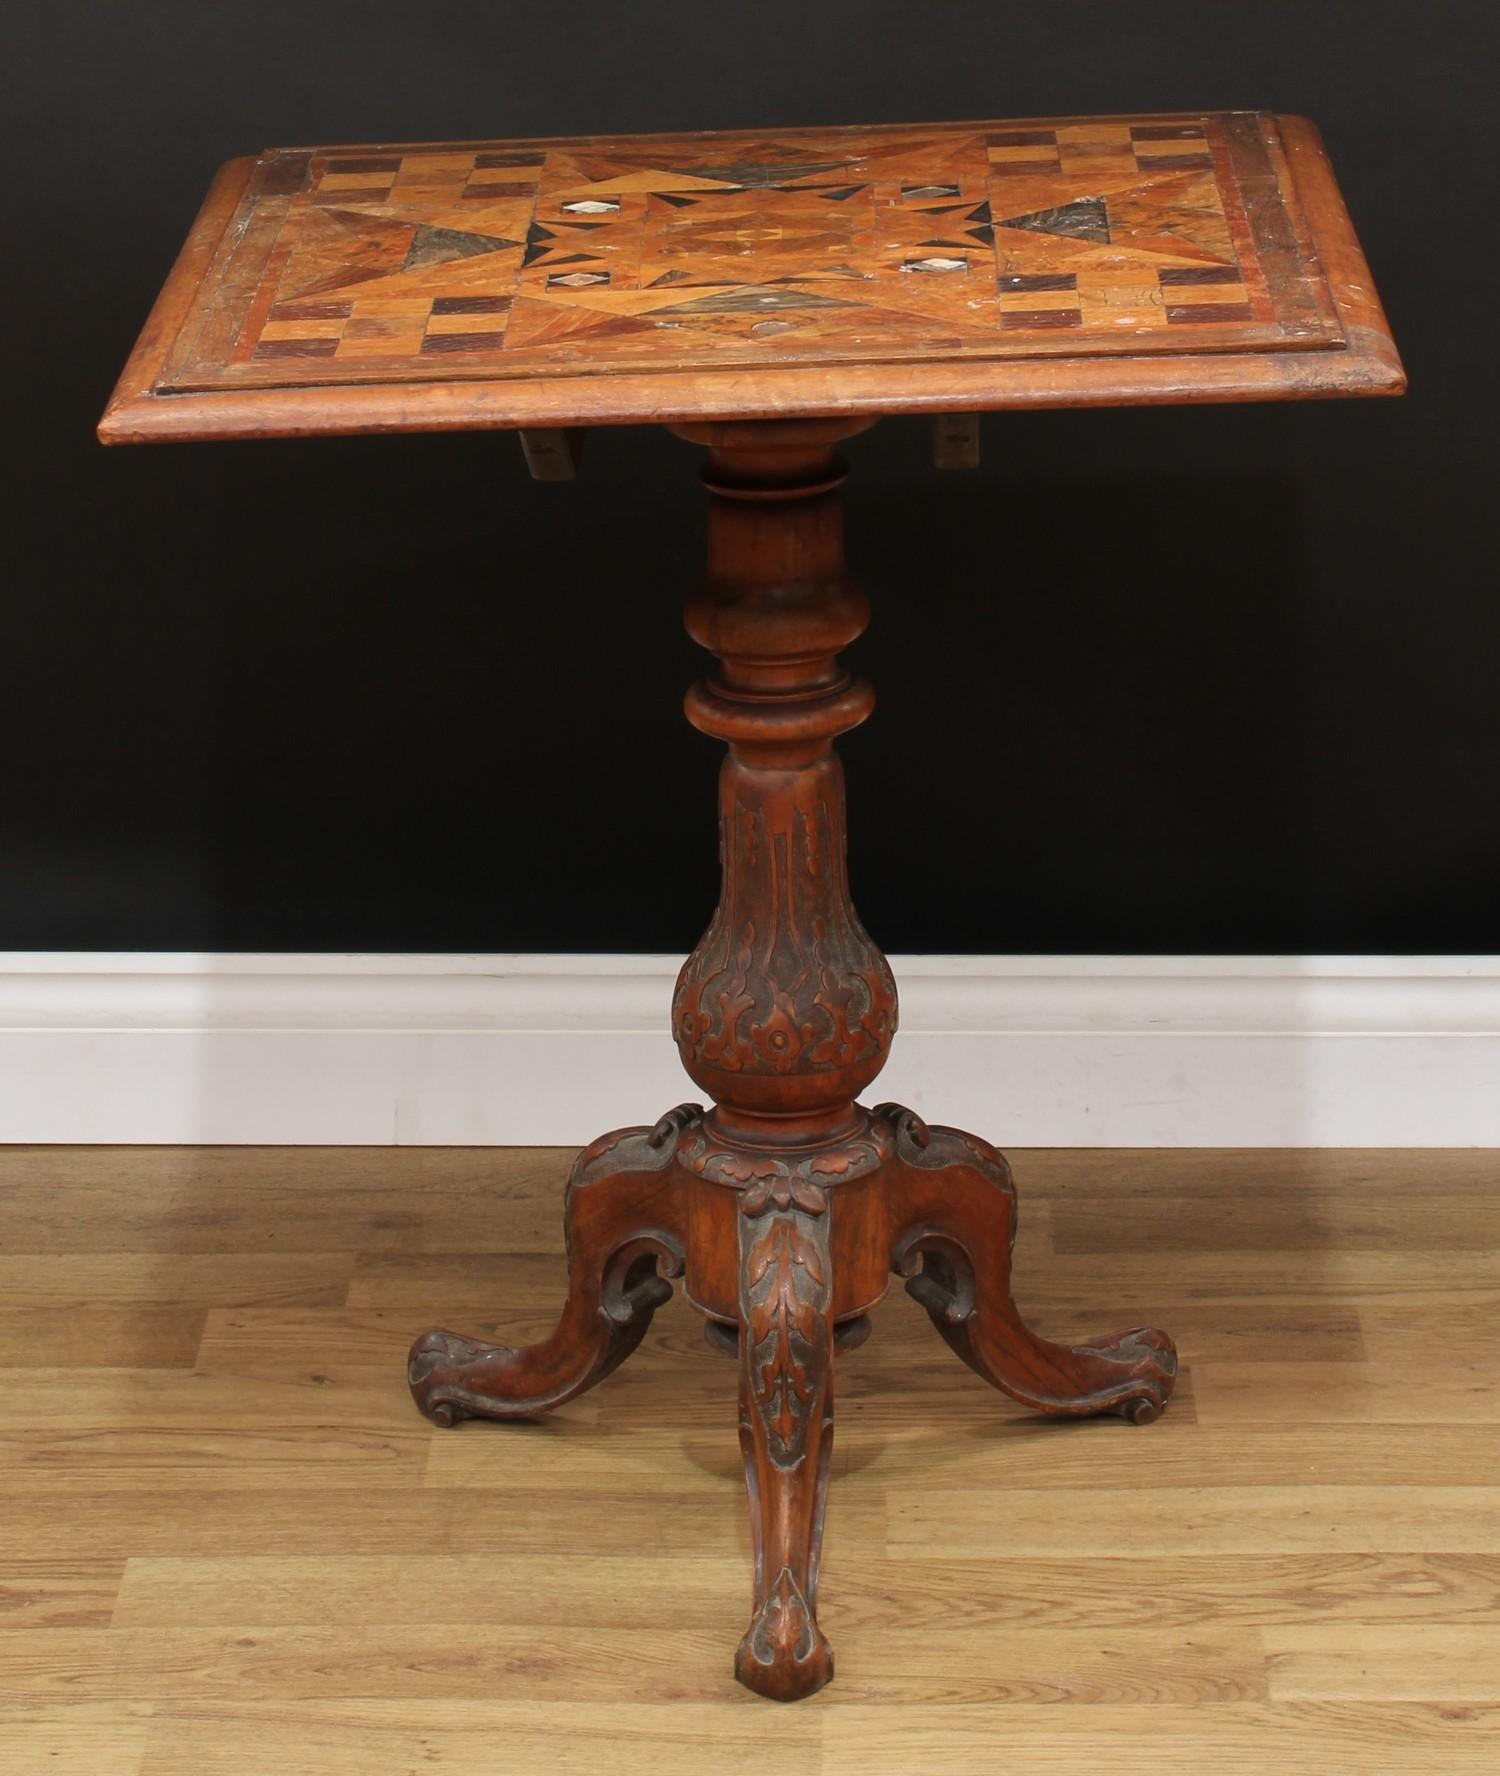 A Victorian parquetry occasional table, near-square top with moulded edge inlaid with geometric